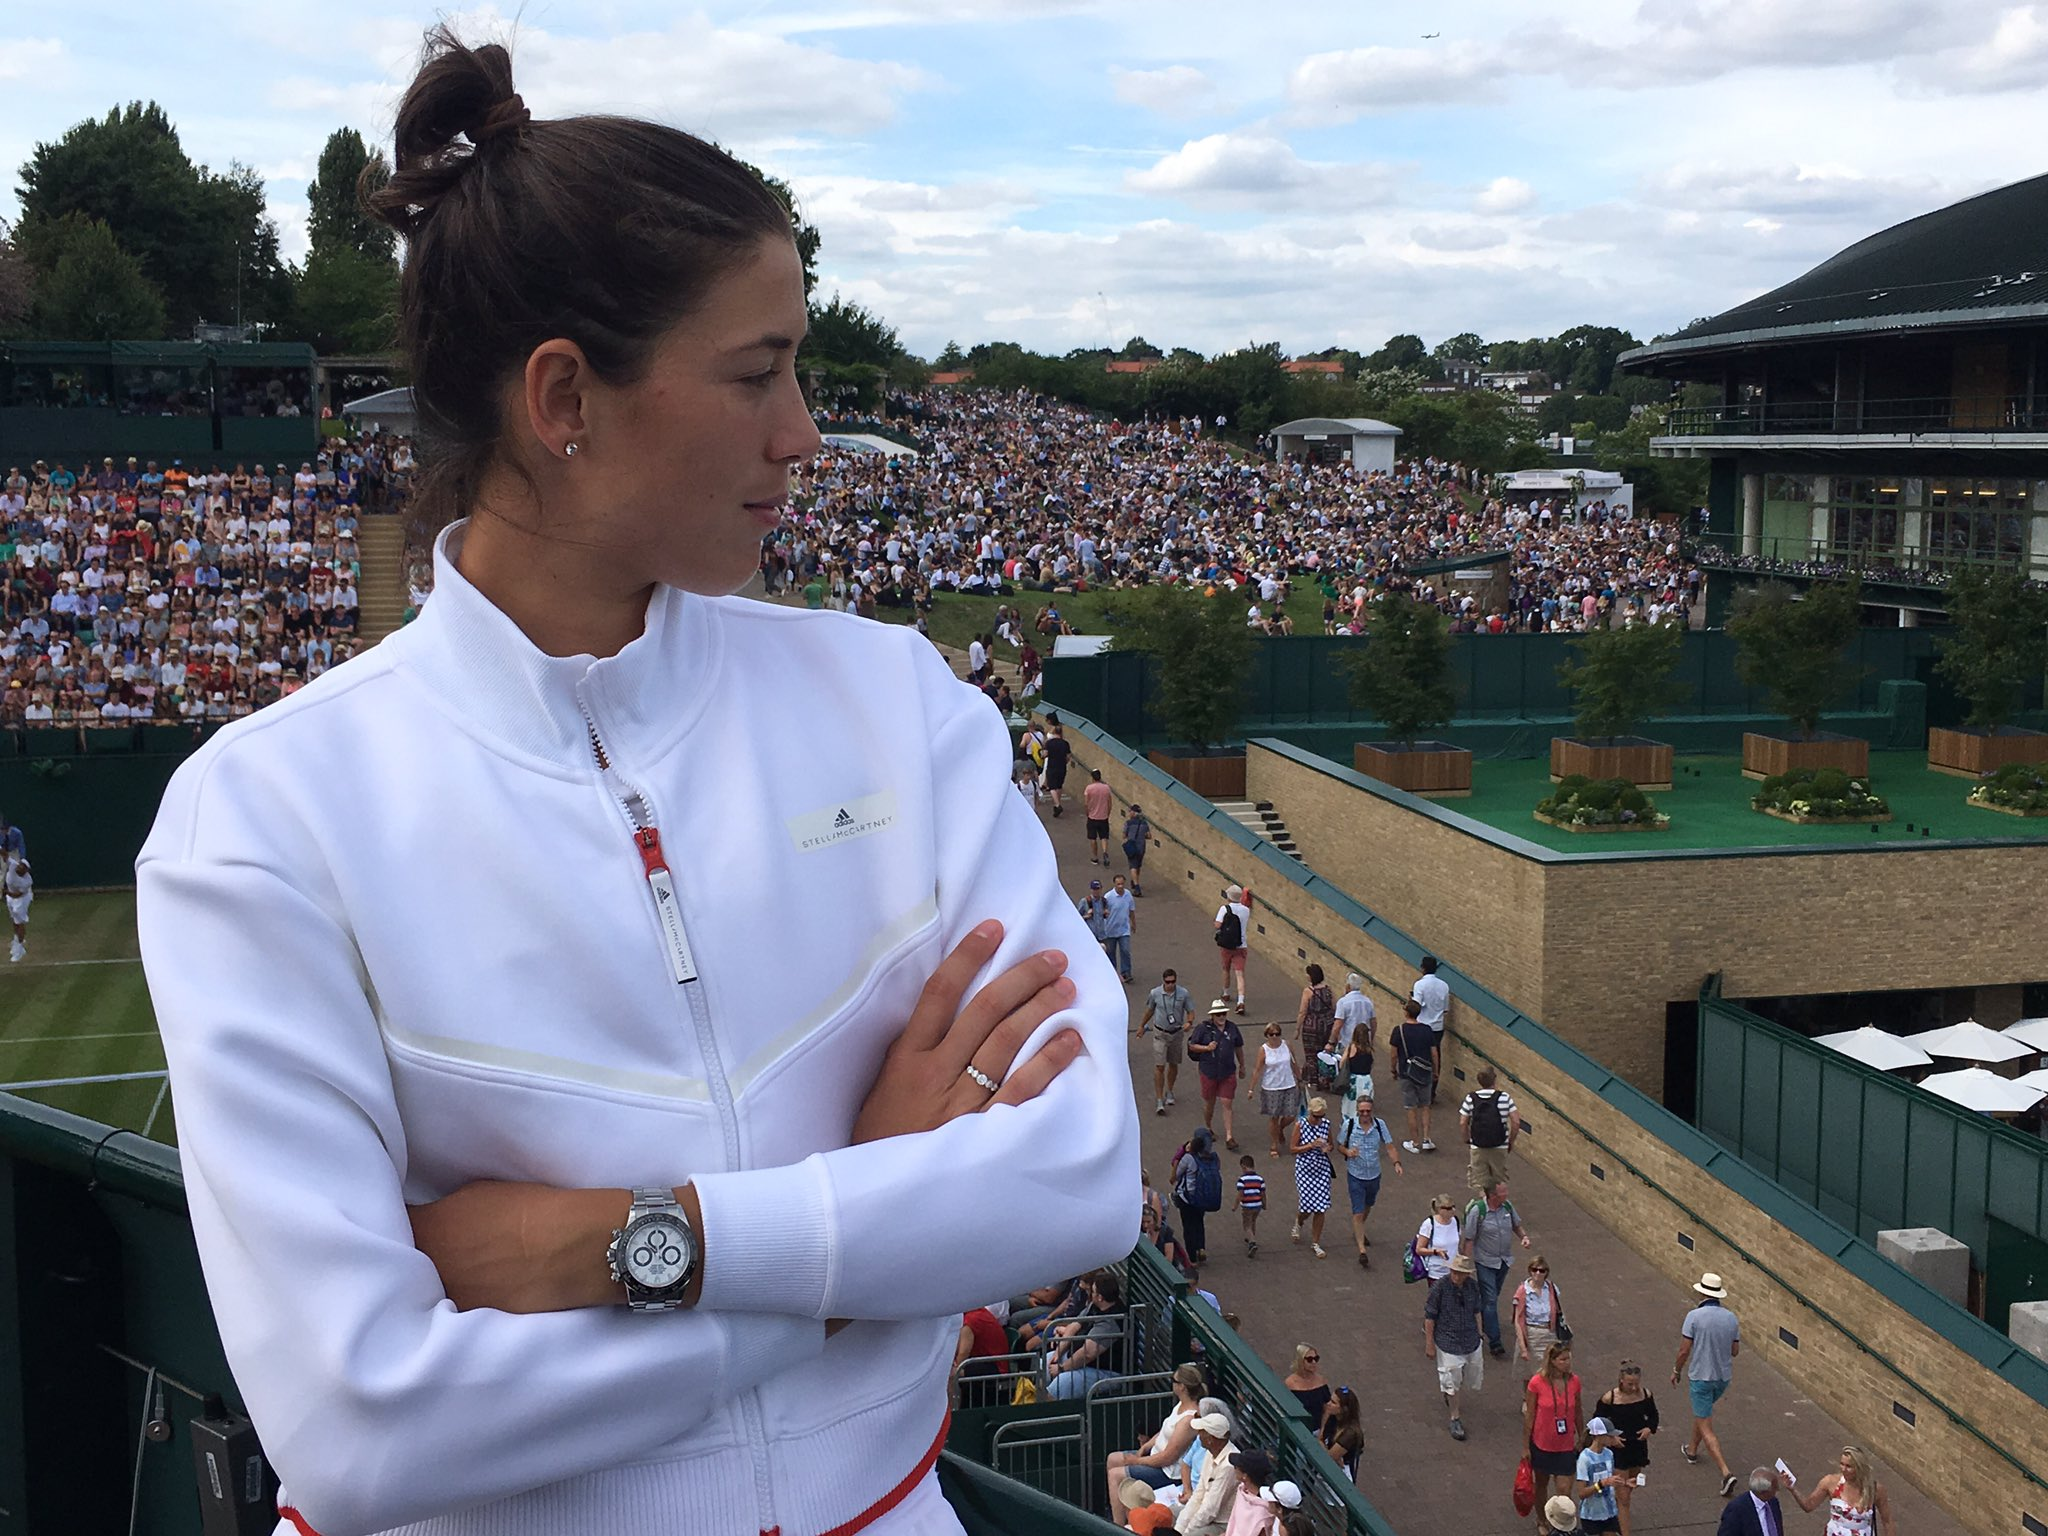 Pedazo vista desde el centro de TV. Está petado!  Great view from the TV compound roof. It is packed! @Wimbledon https://t.co/zM9dZLRoA9